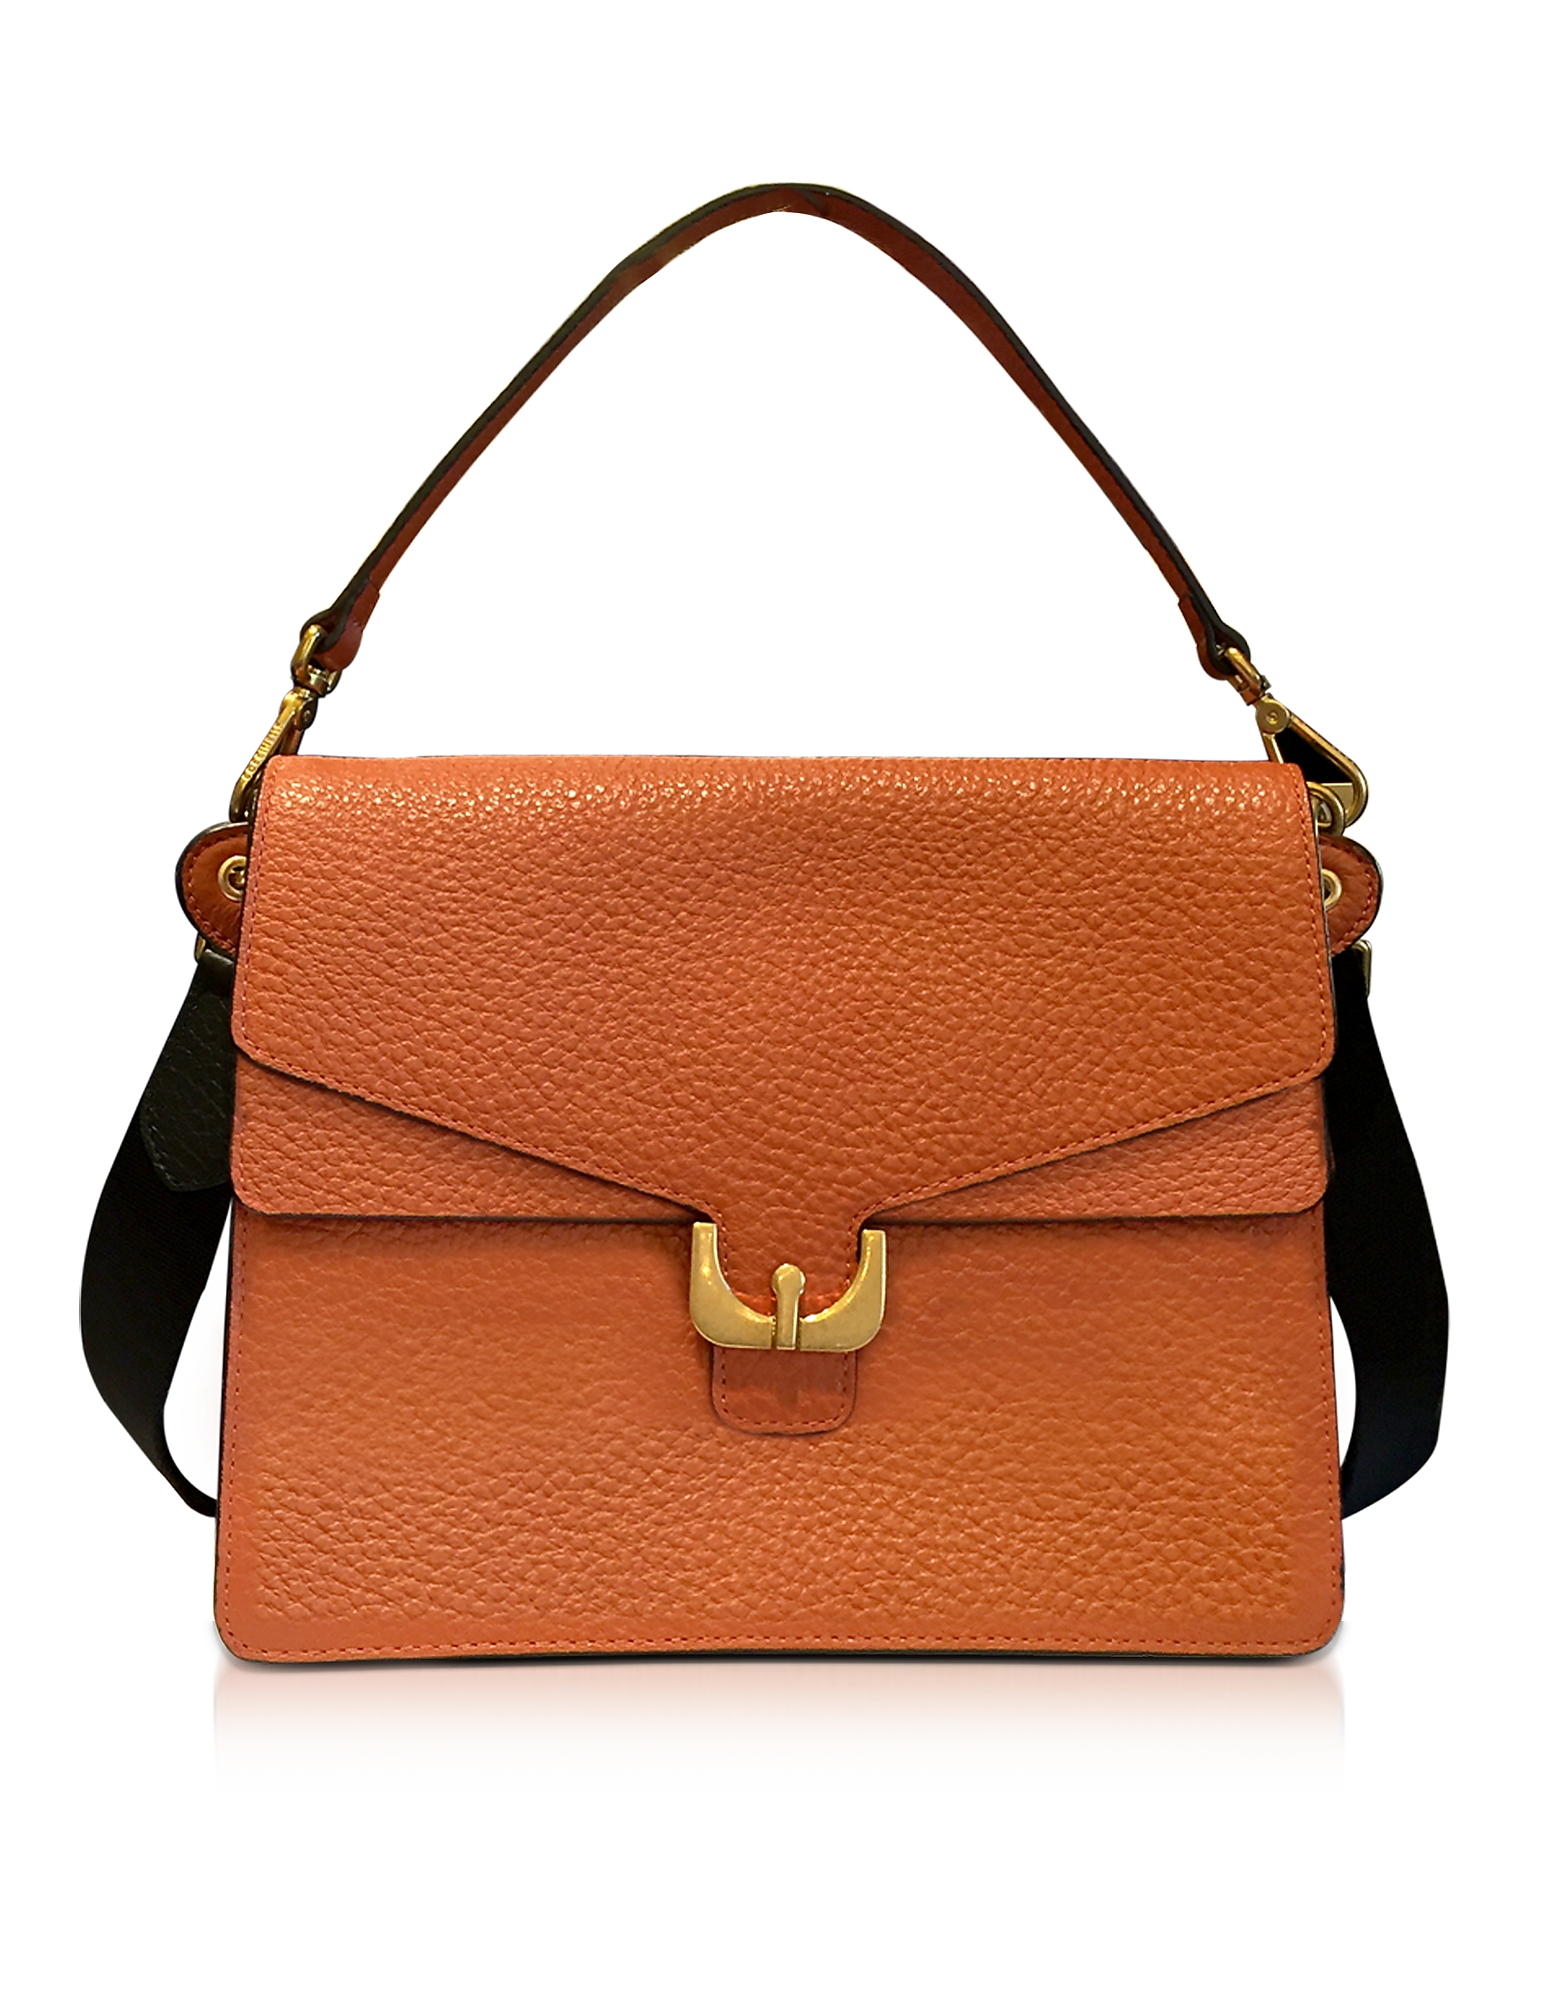 Coccinelle Handbags, Ambrine Calendula Bubble Leather Satchel Bag